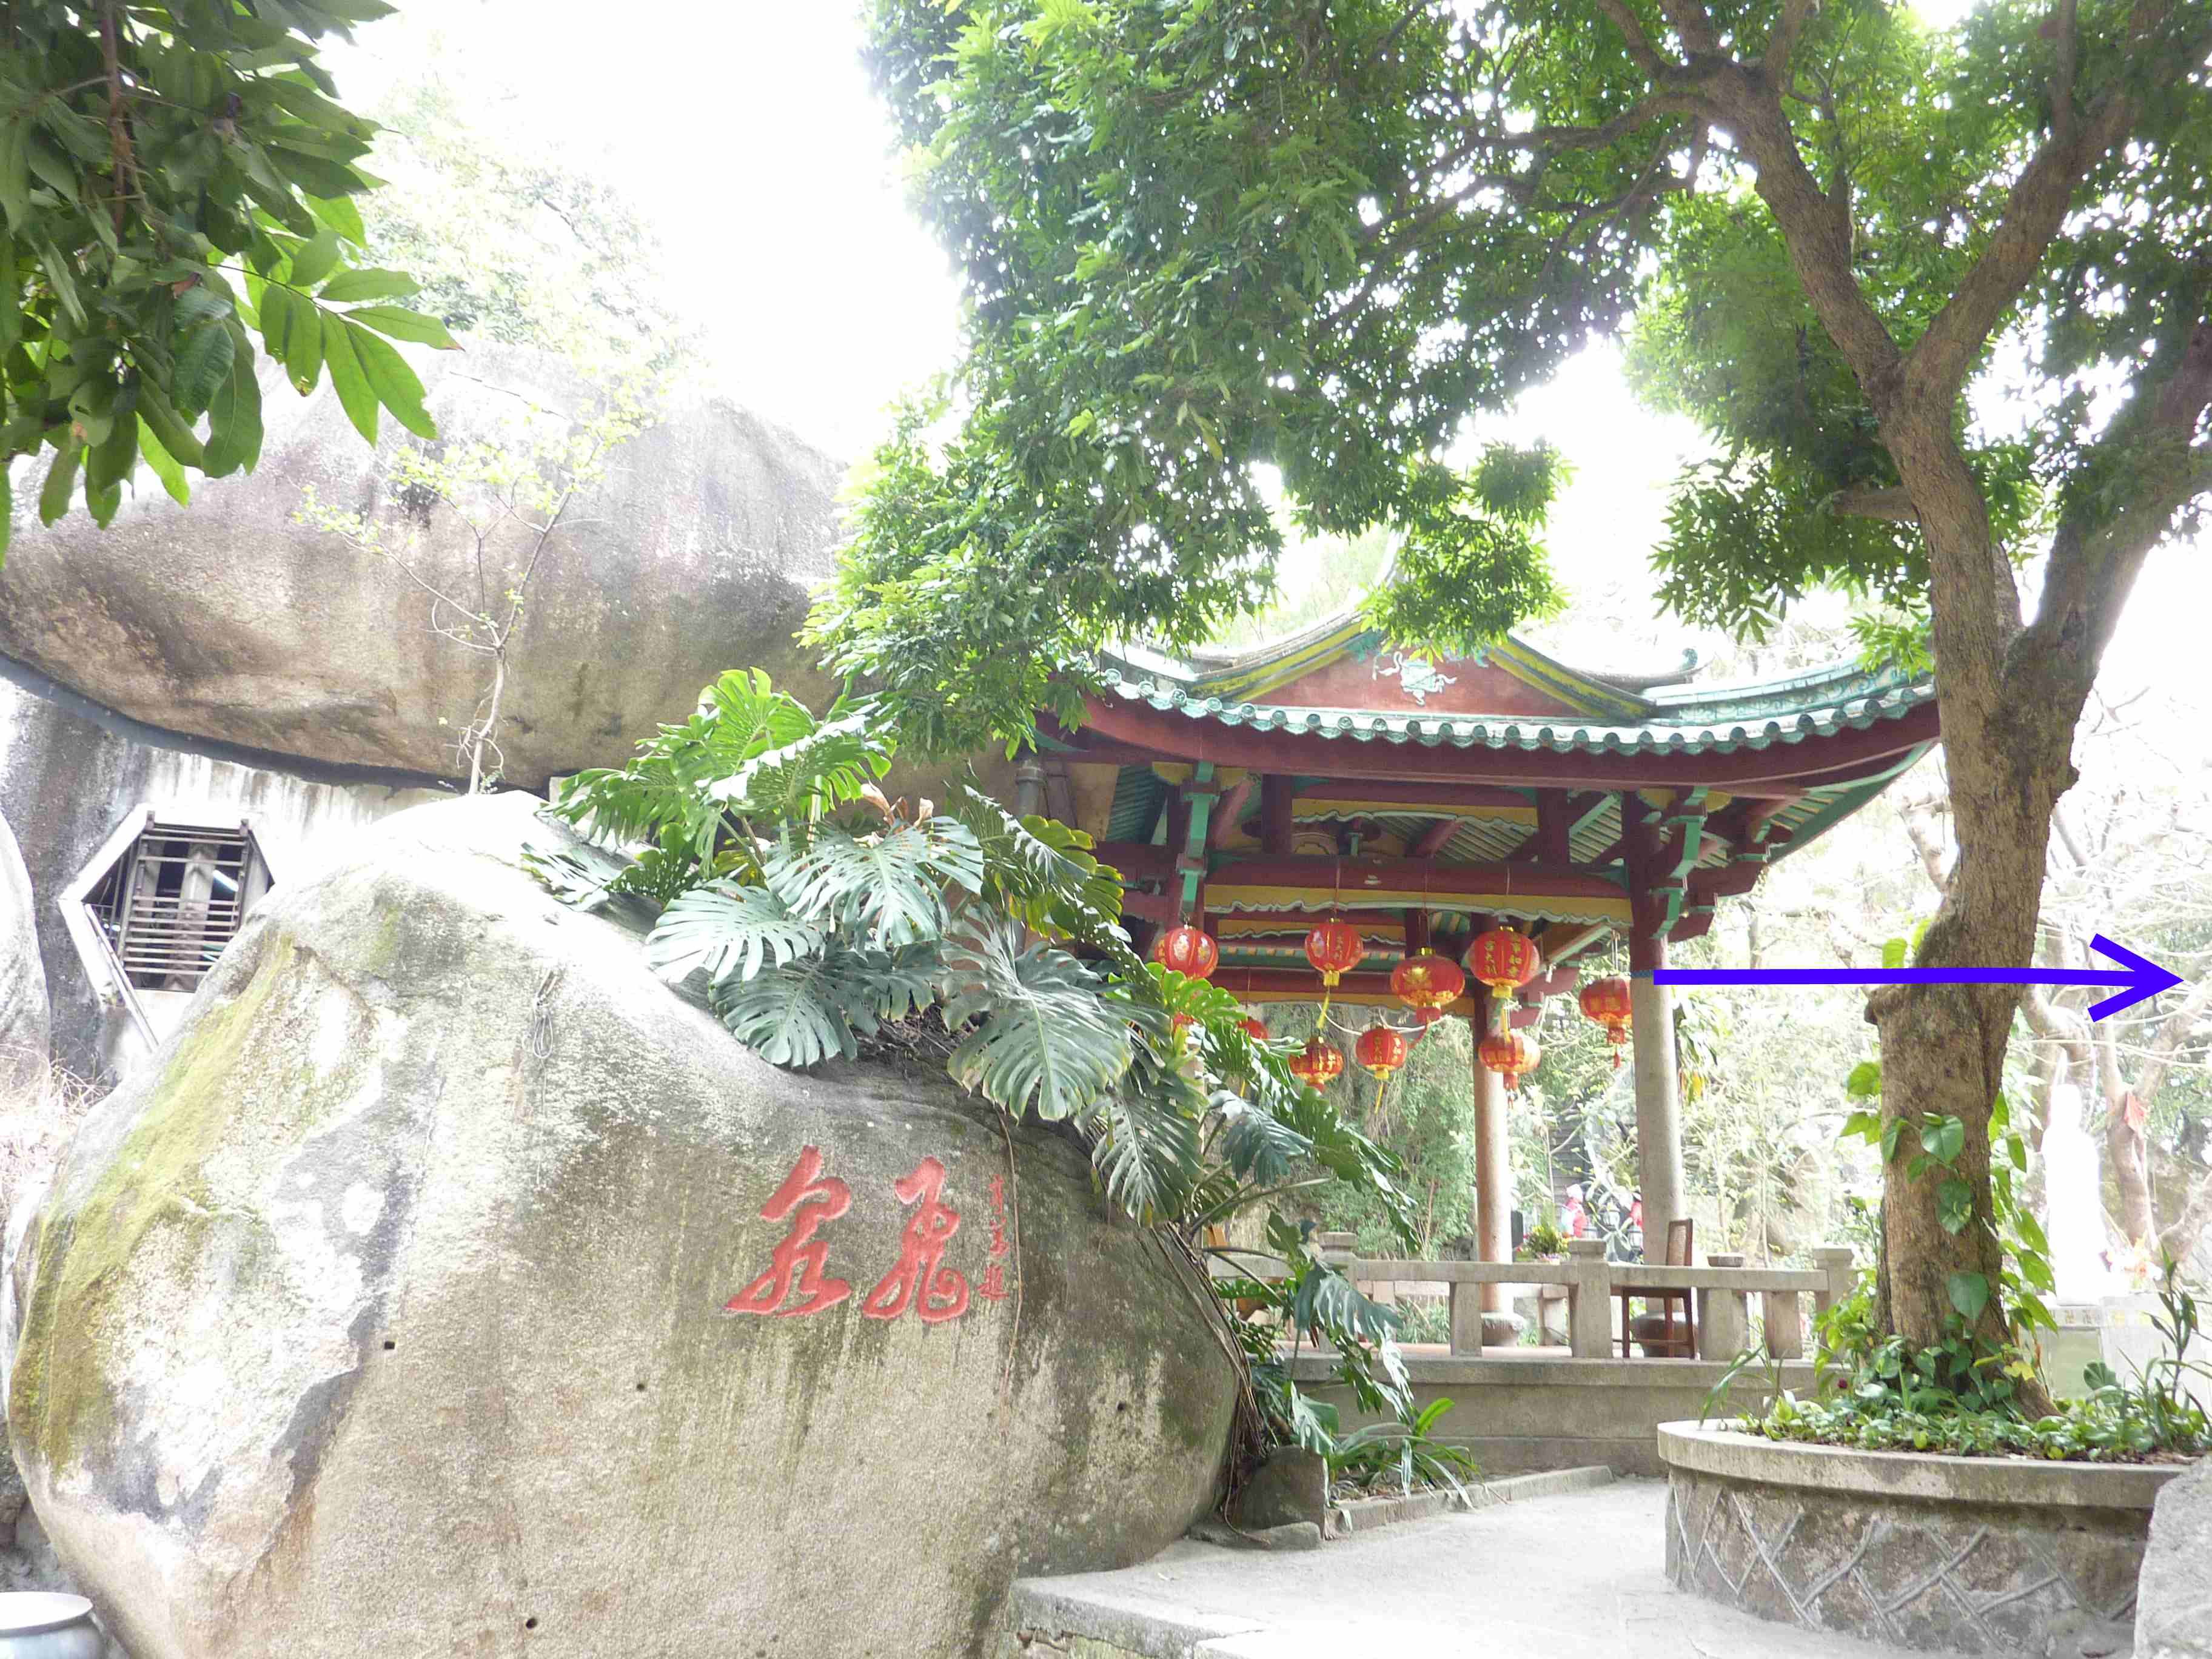 Trimming Feng Shui According to the Nature. The Blue Arrow Shows the Direction of the Temple风水要拿捏得当,关键在于因地制宜